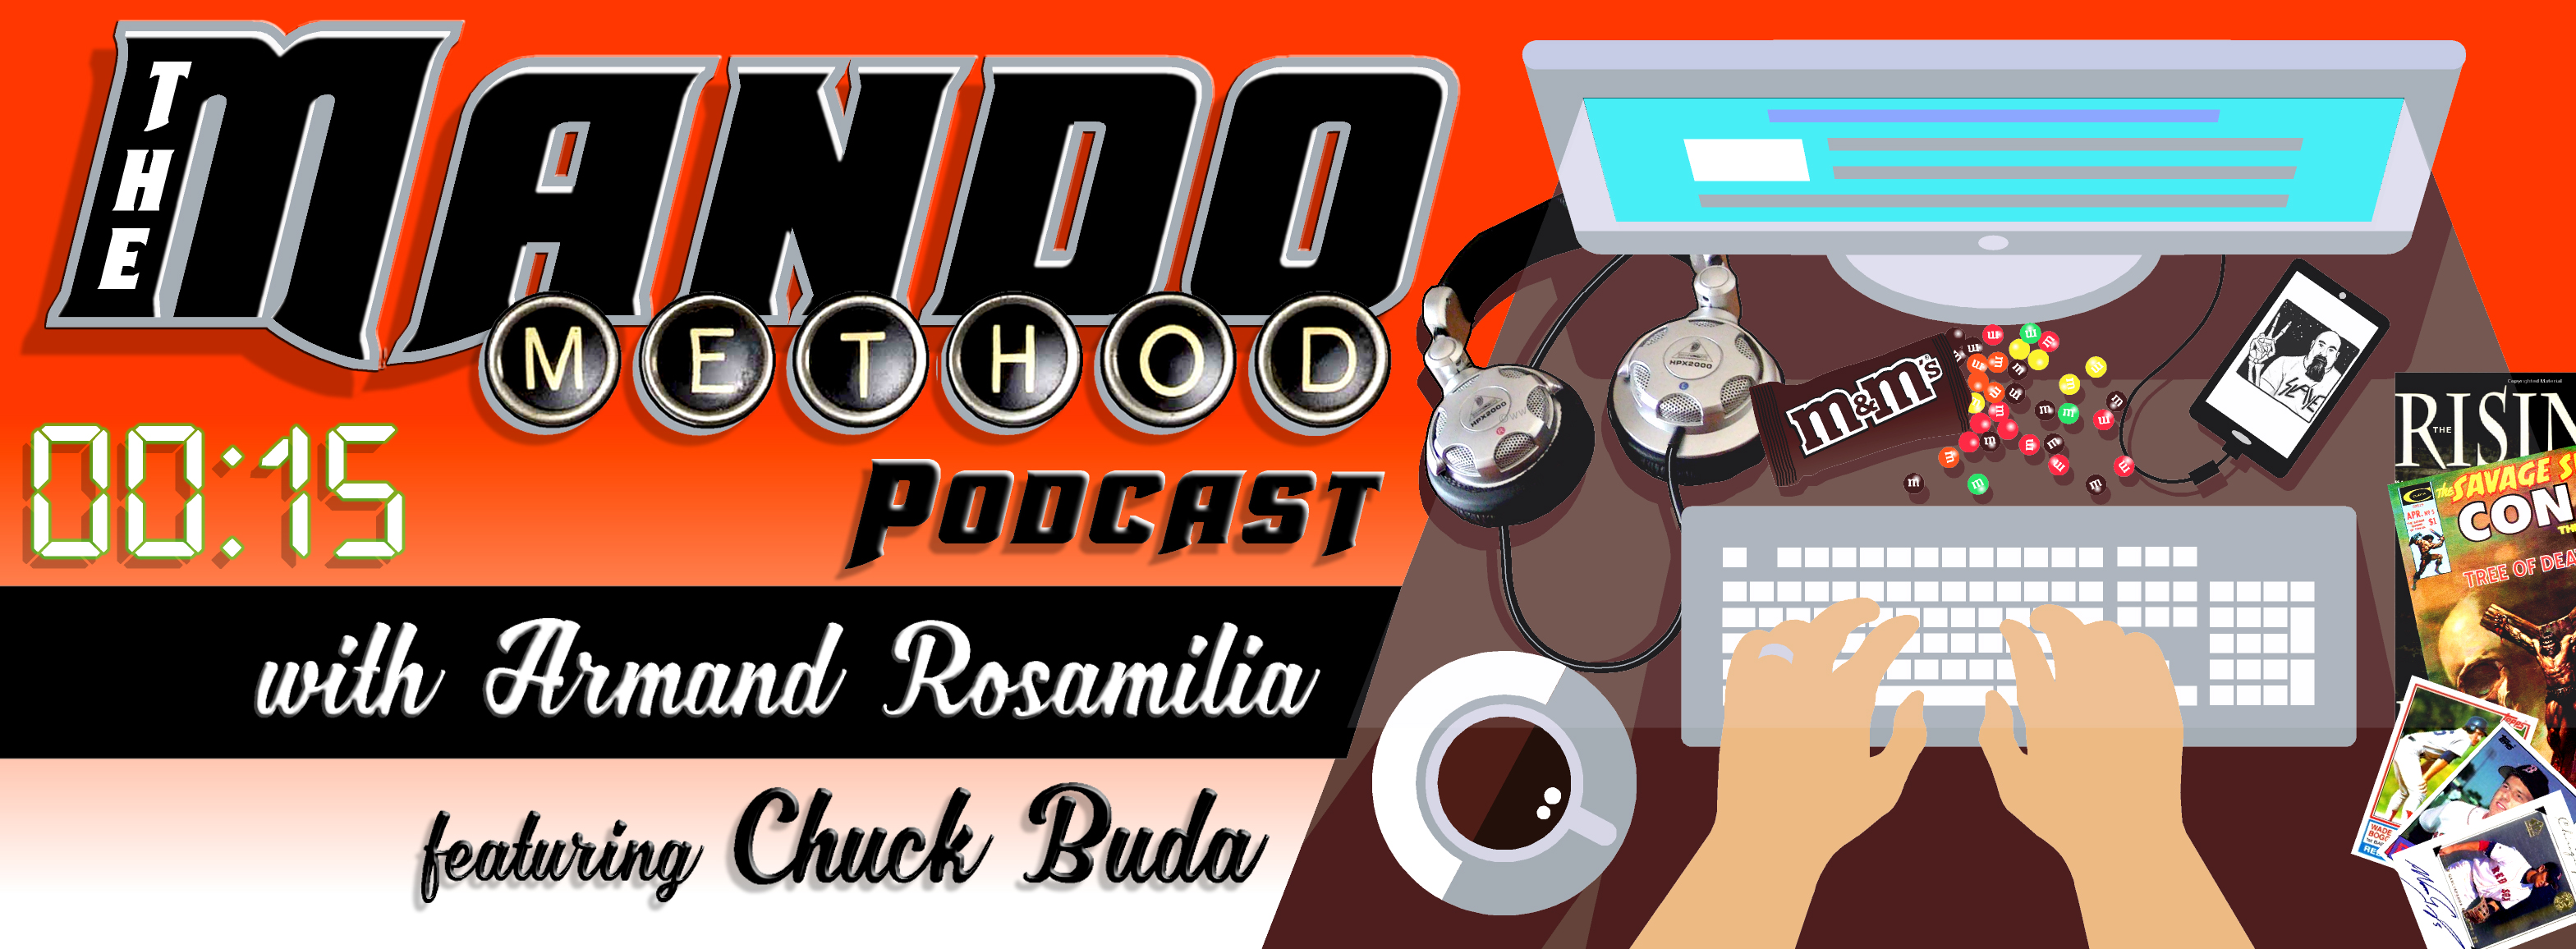 The Mando Method Podcast: Episode 261 - 3 Quick Fixes For Your Dialogue show art